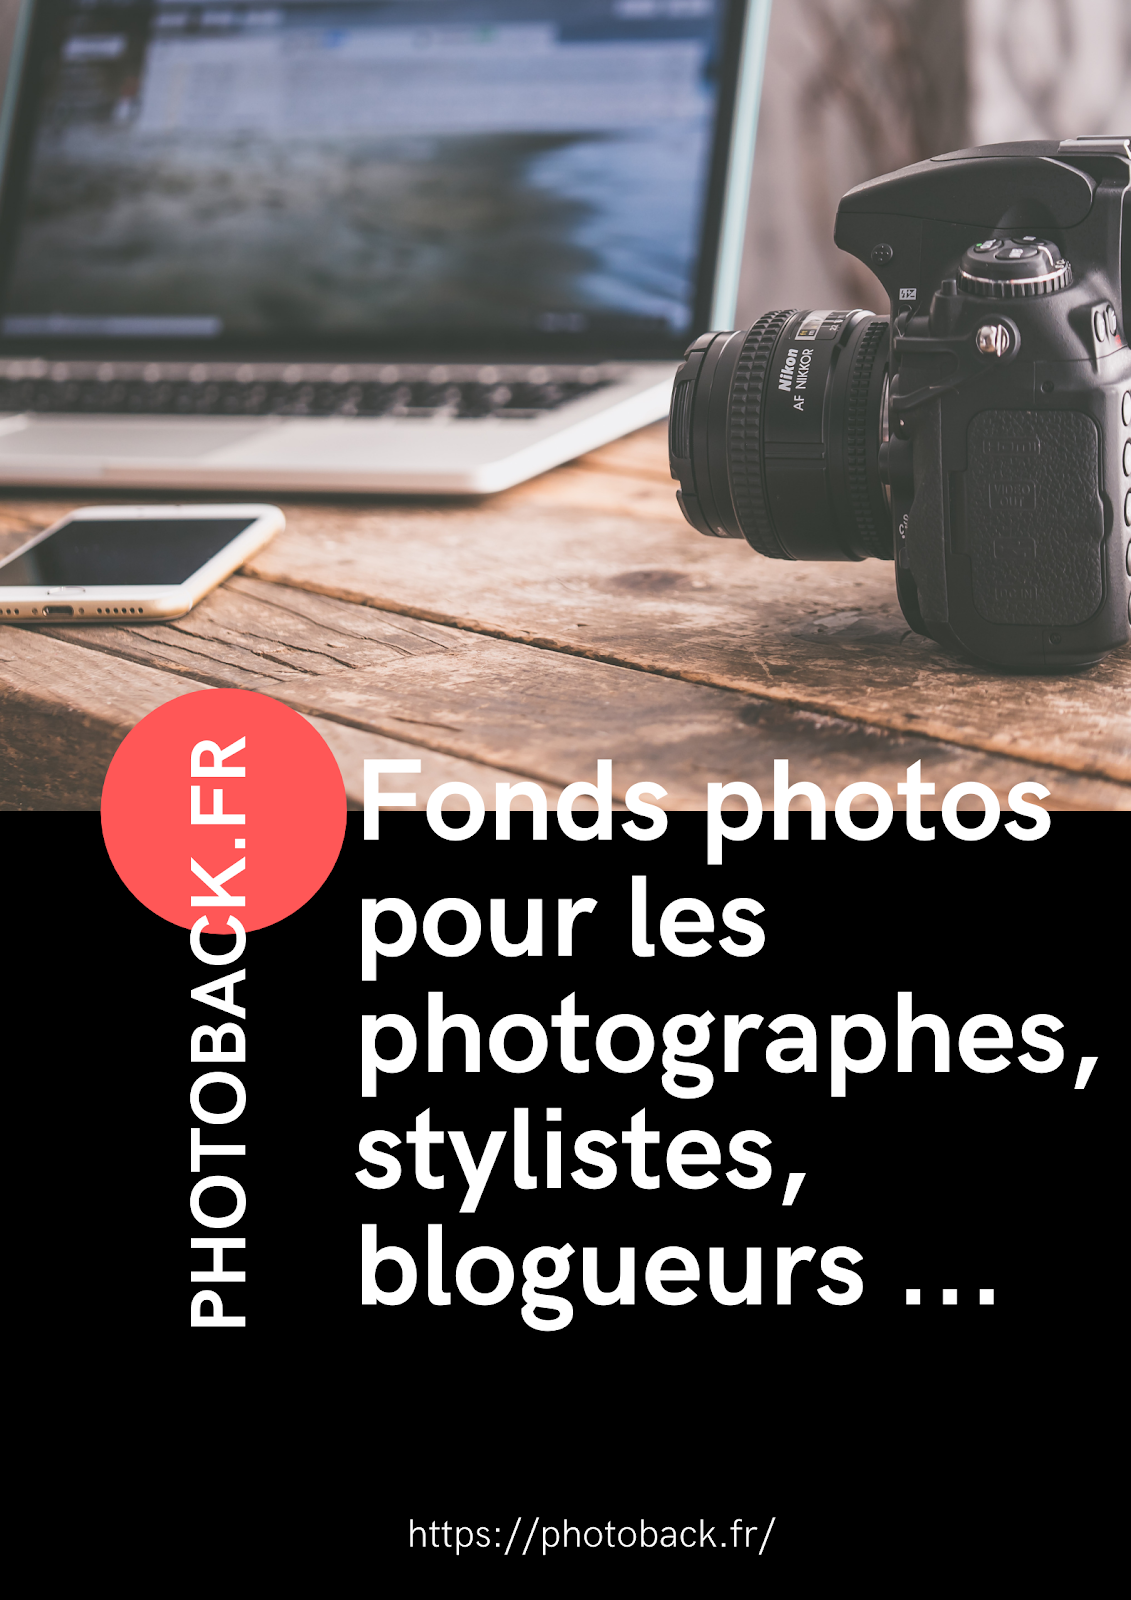 BOUTIQUE DE FONDS PHOTOS